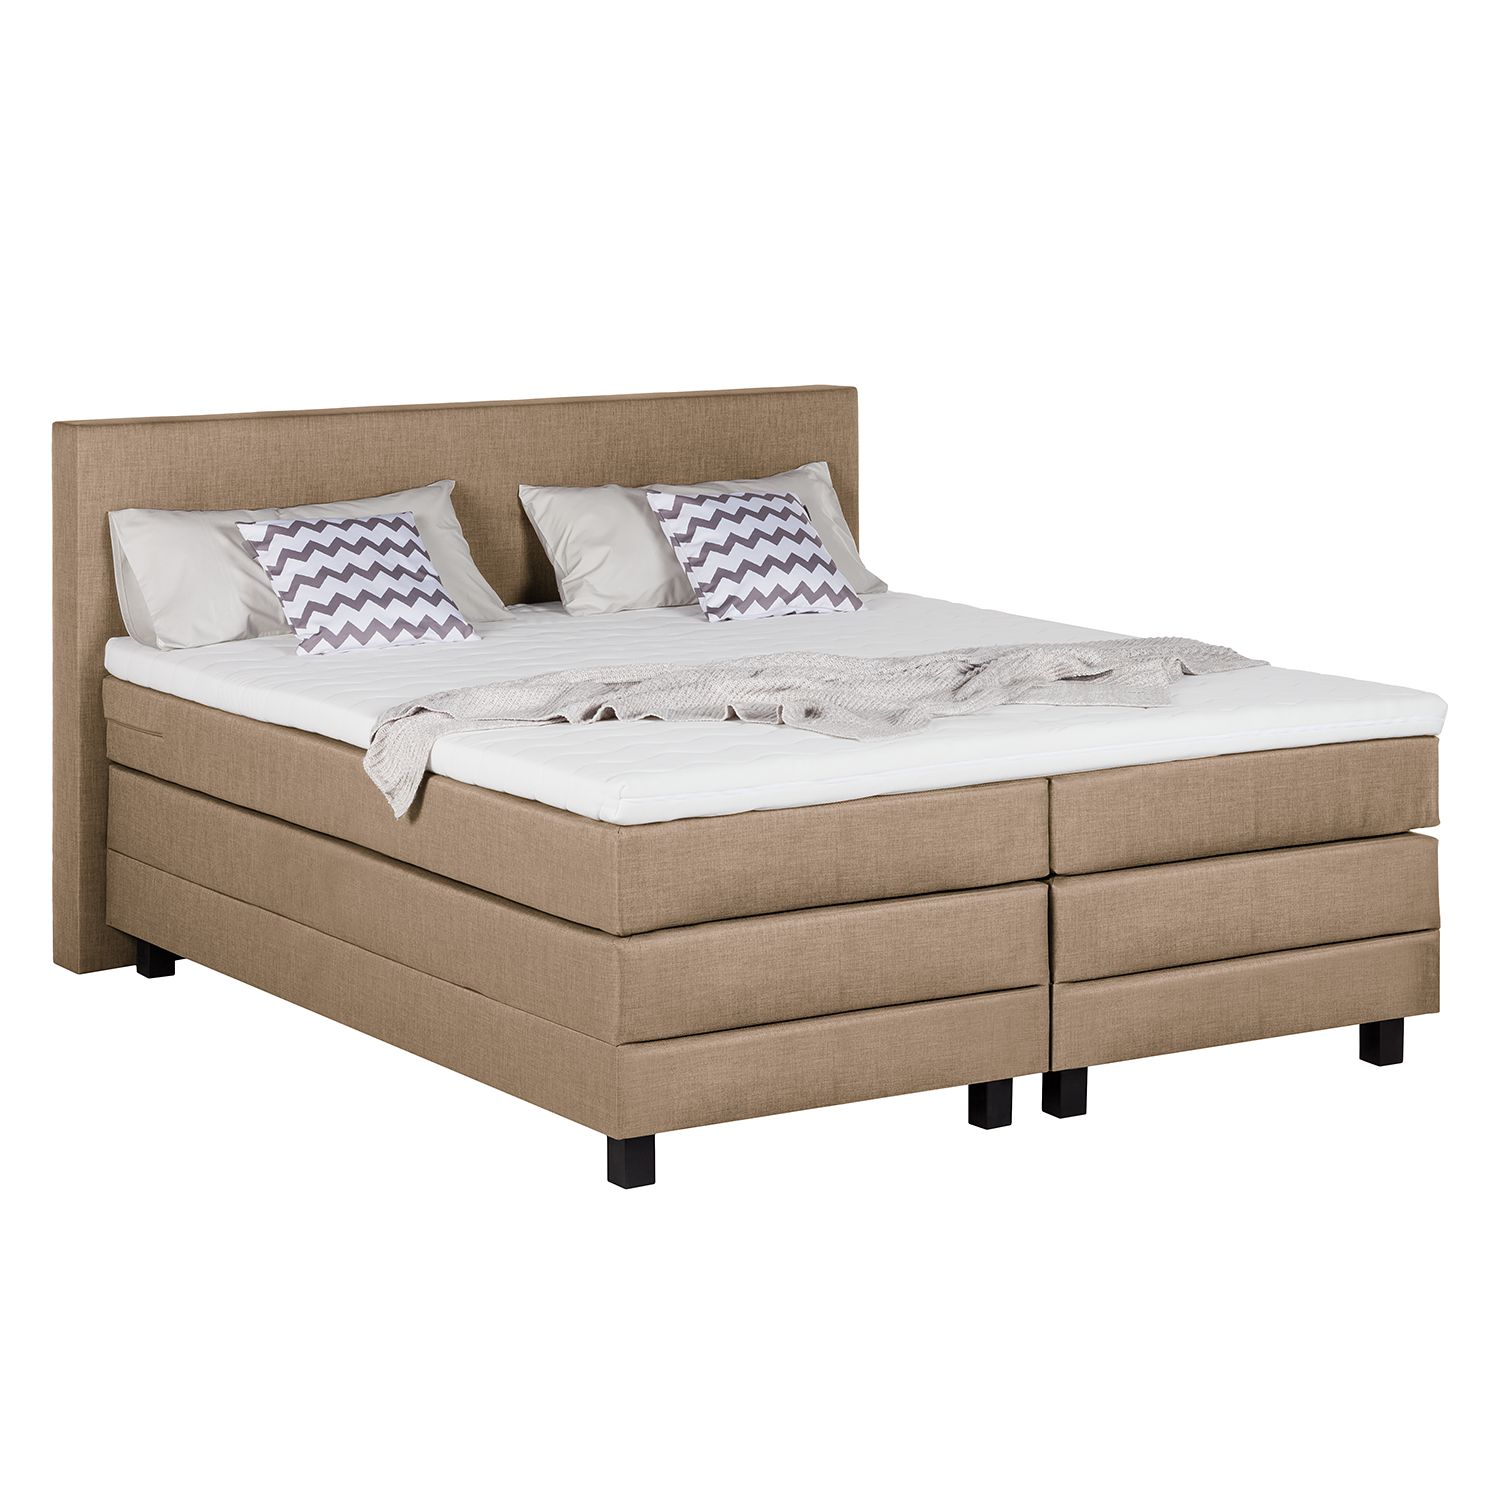 Boxspringbett Superior Night II - 180 x 200cm - H3 ab 80 kg - Beige meliert, Grand Selection